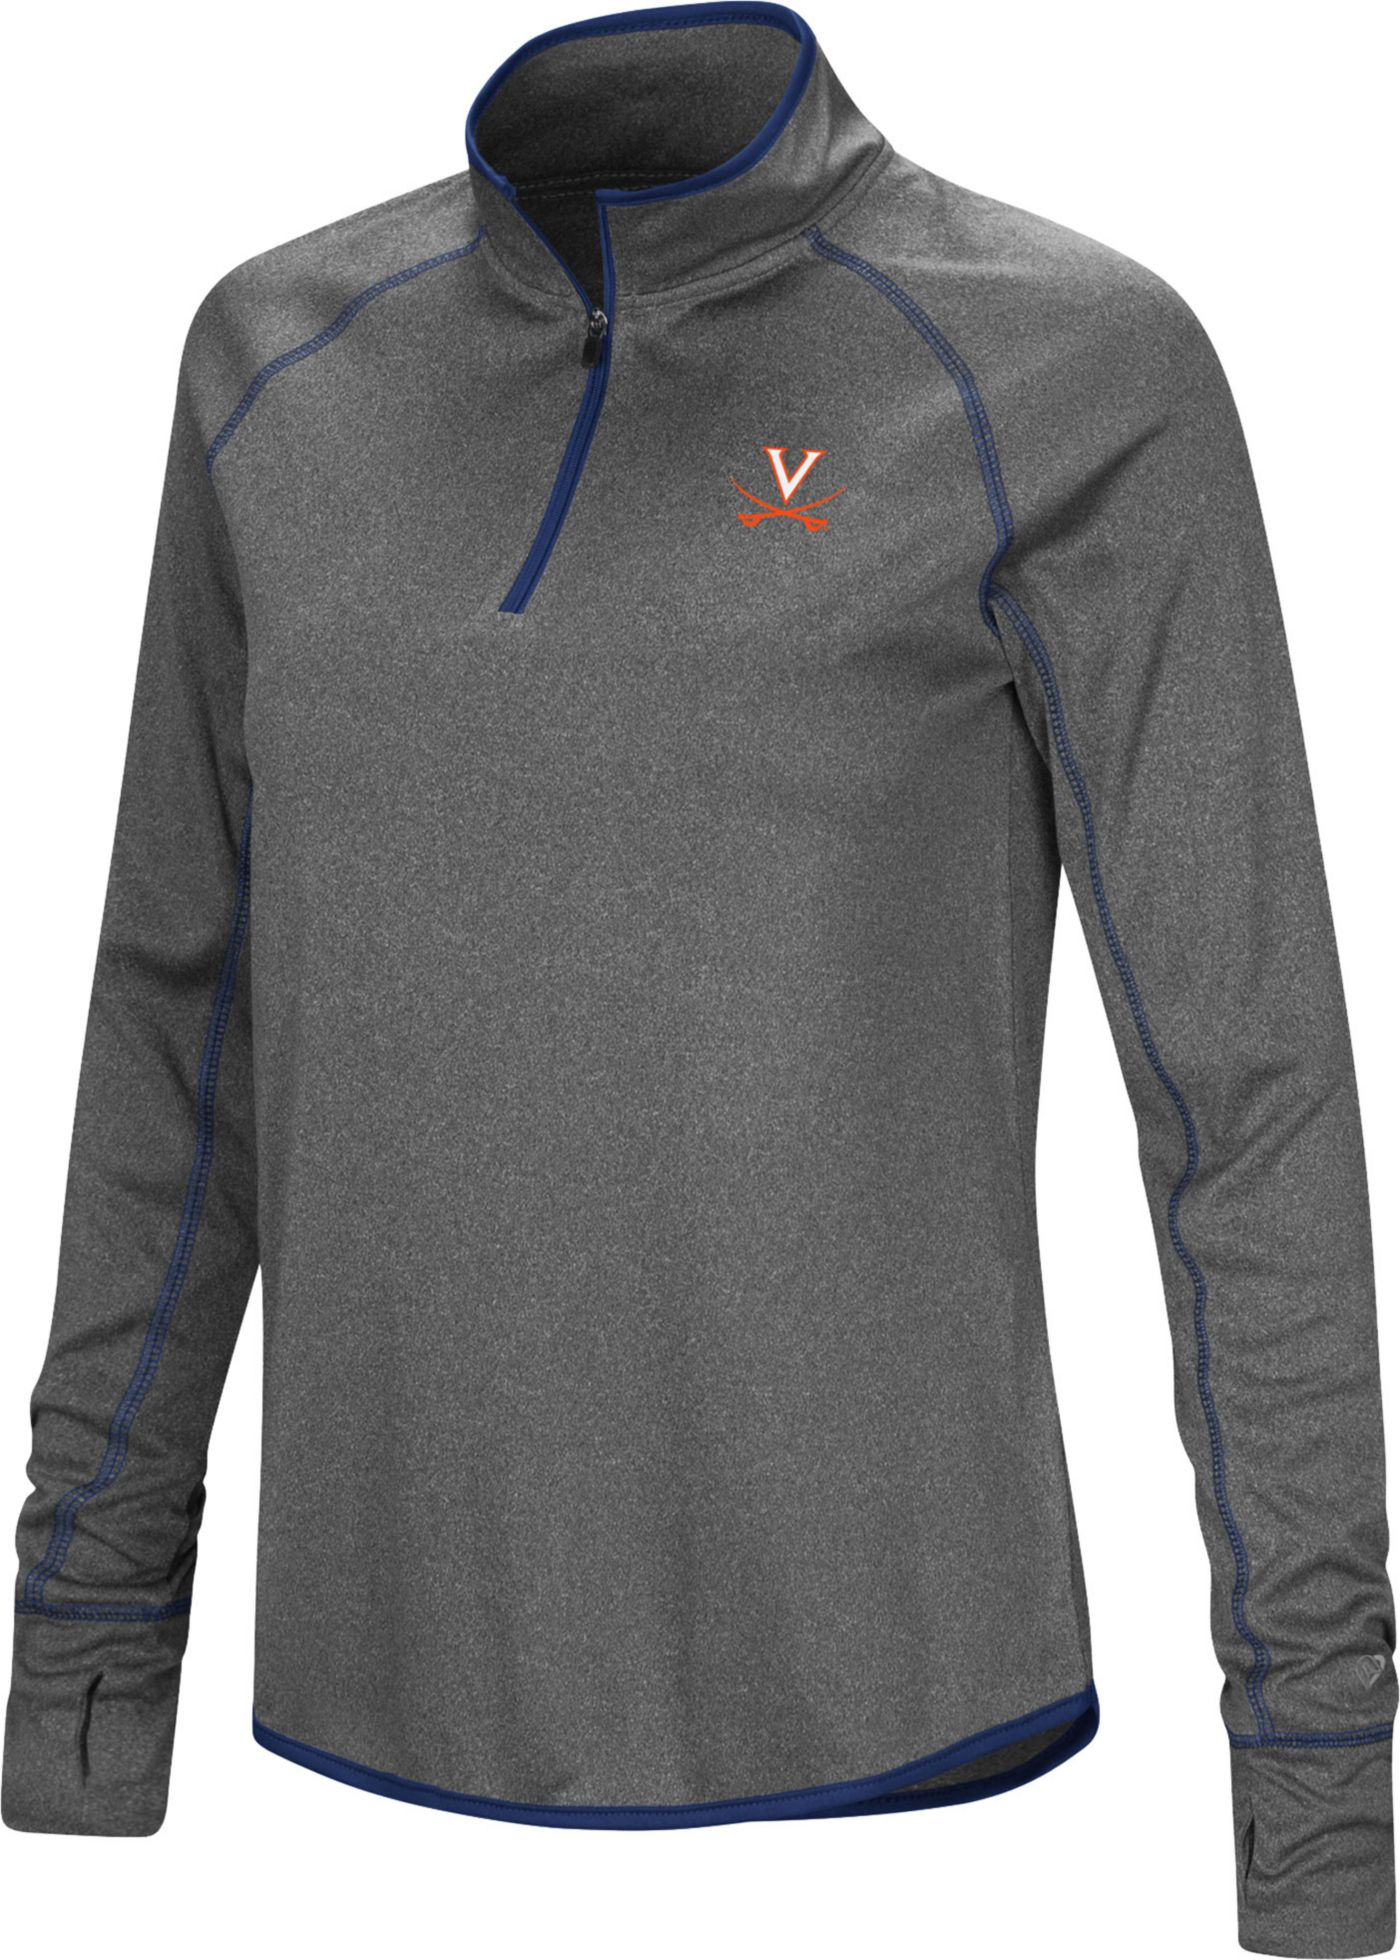 Colosseum Women's Virginia Cavaliers Grey Stingray Quarter-Zip Shirt